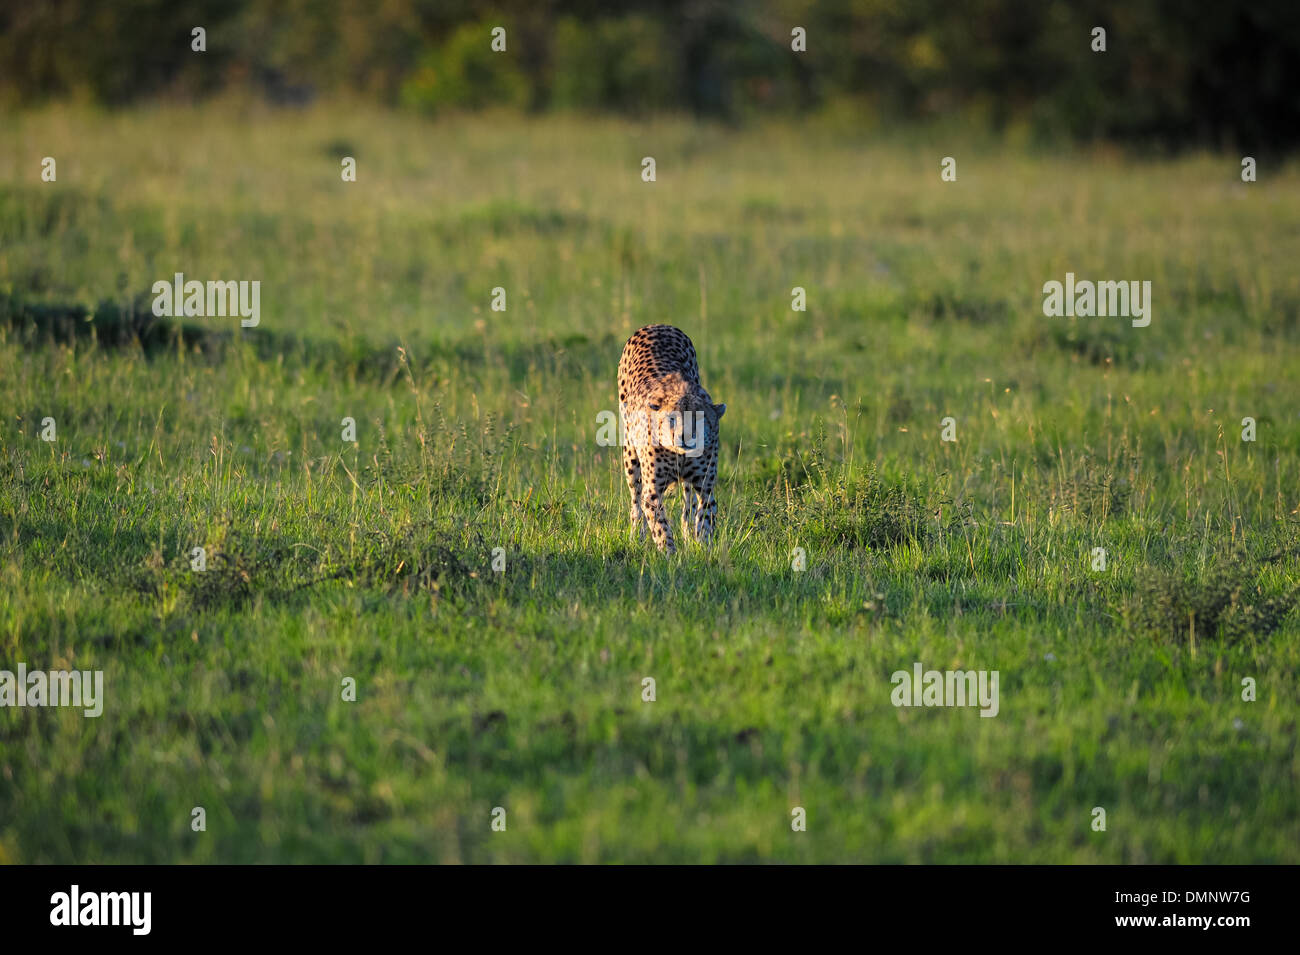 on safari in africa with the wild beasts - Stock Image